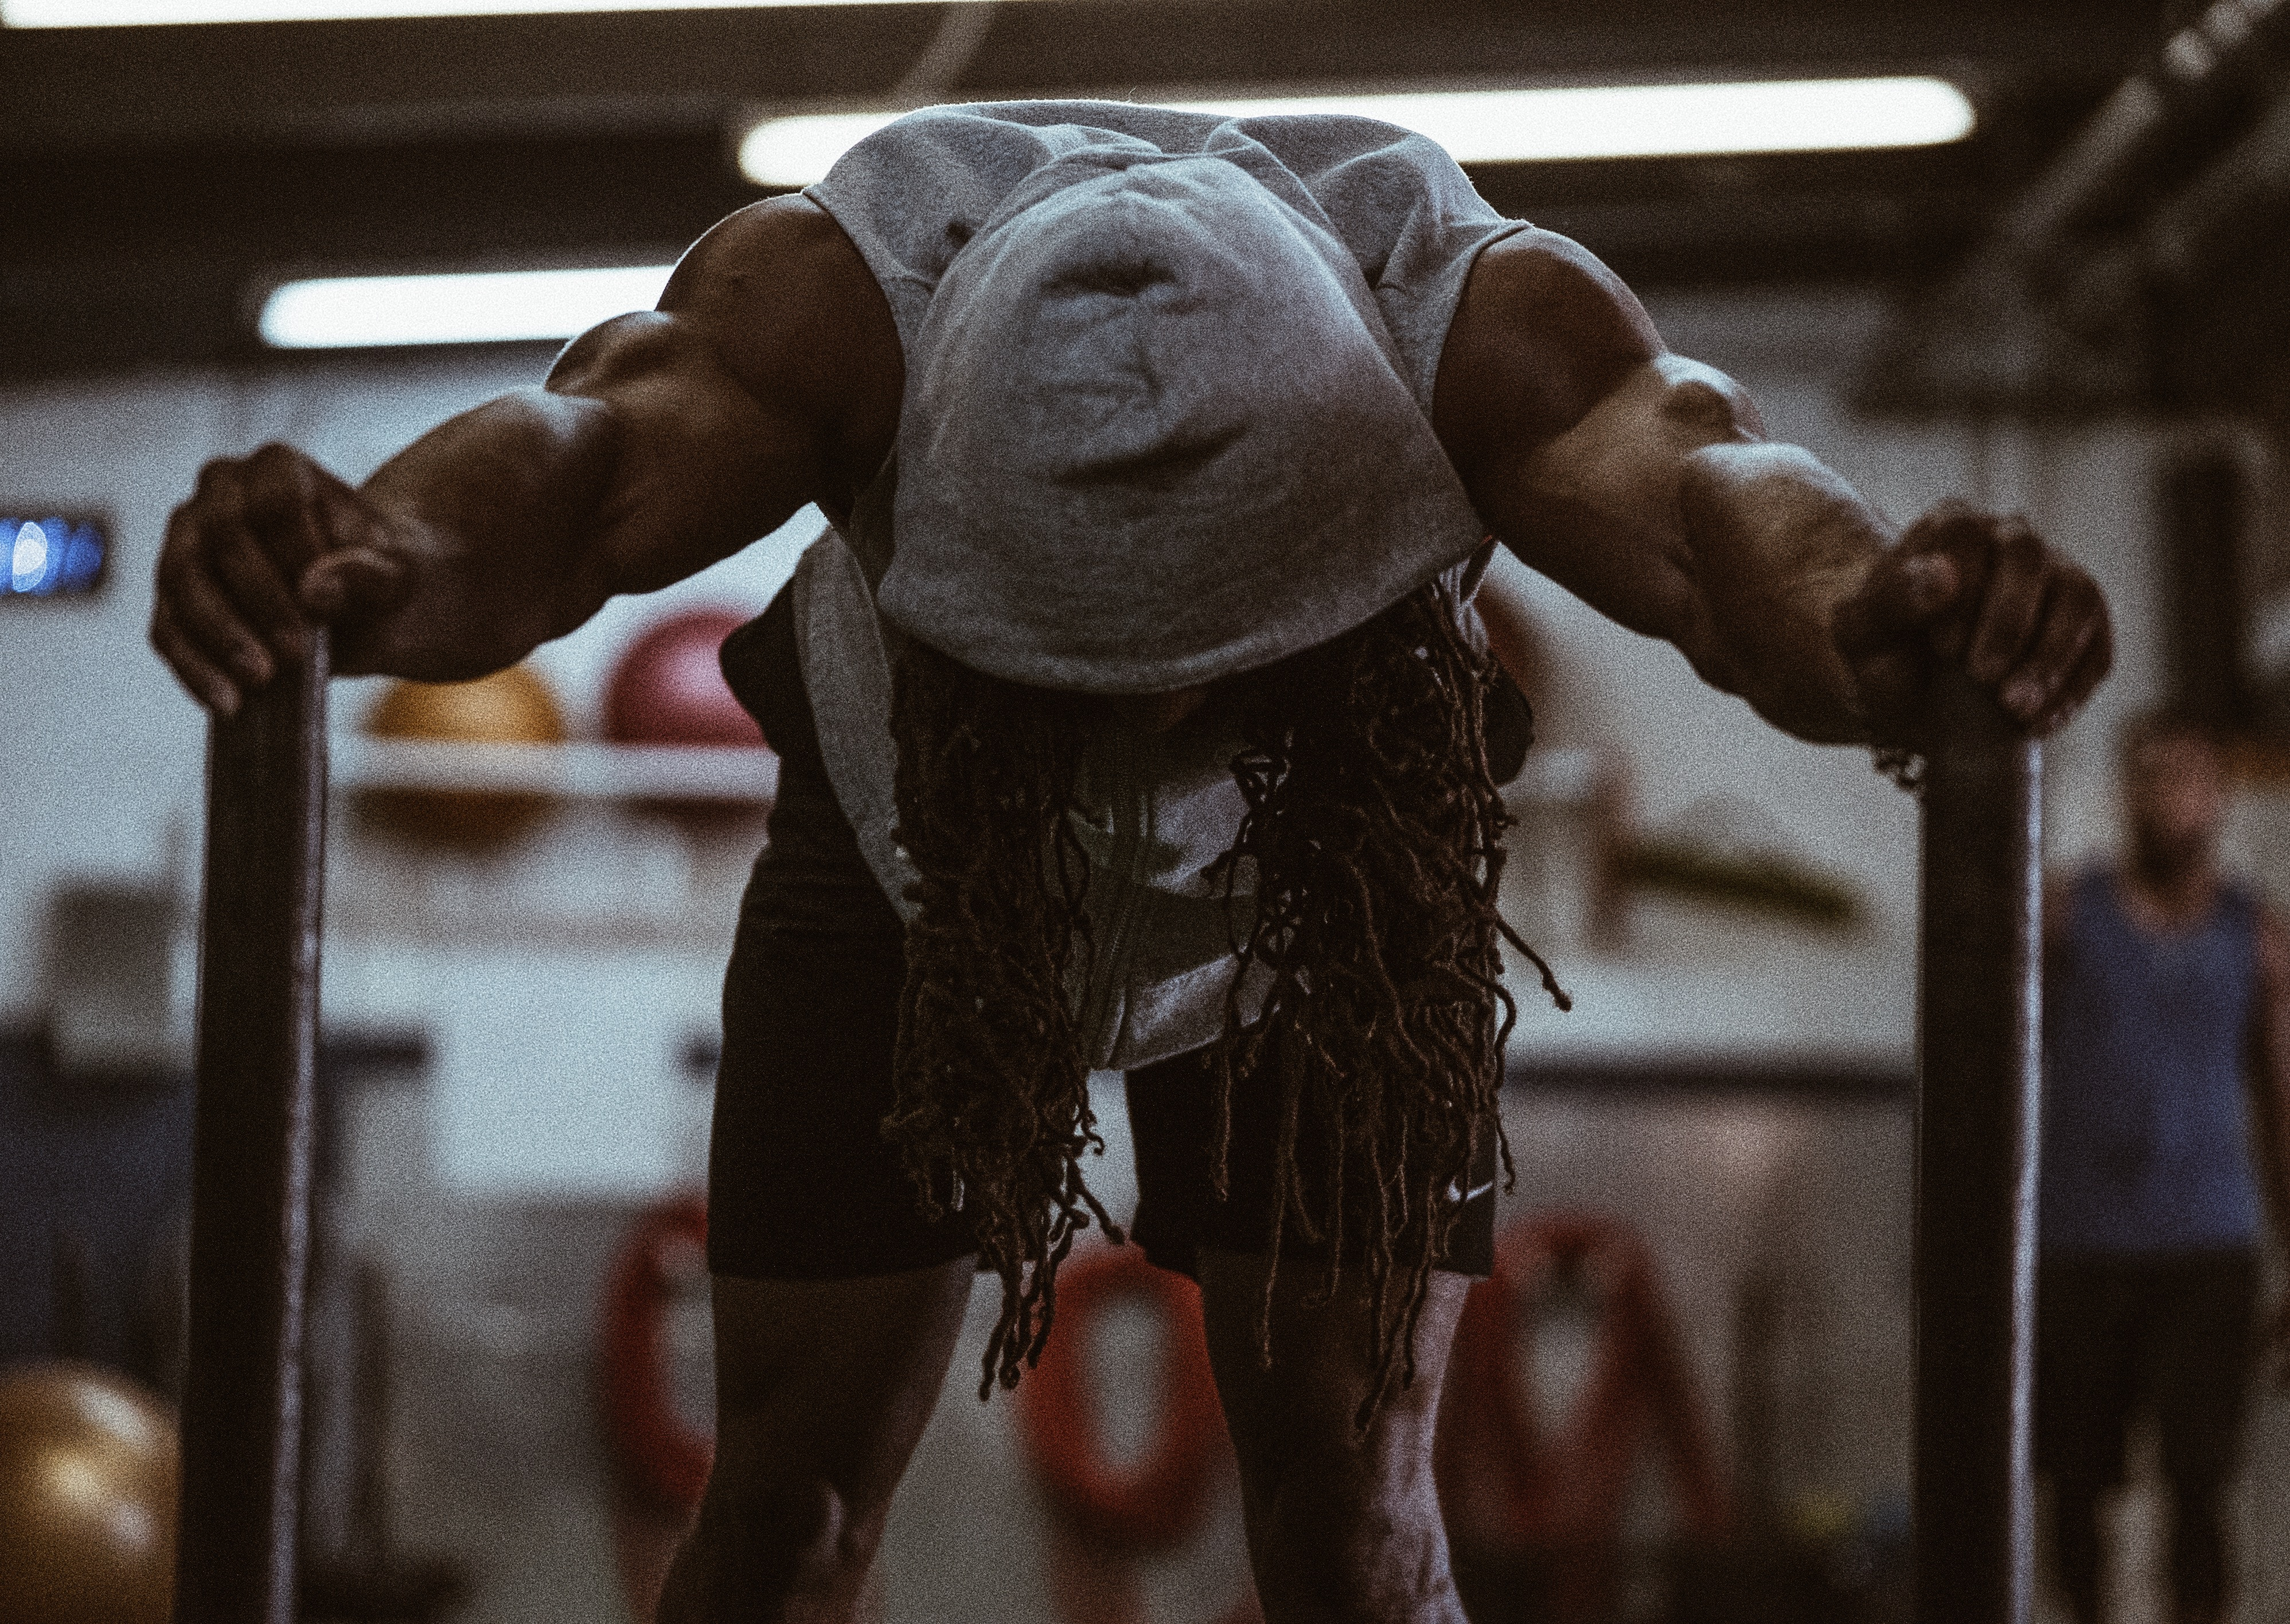 Athlete exercises and practices while struggling with mental health stress